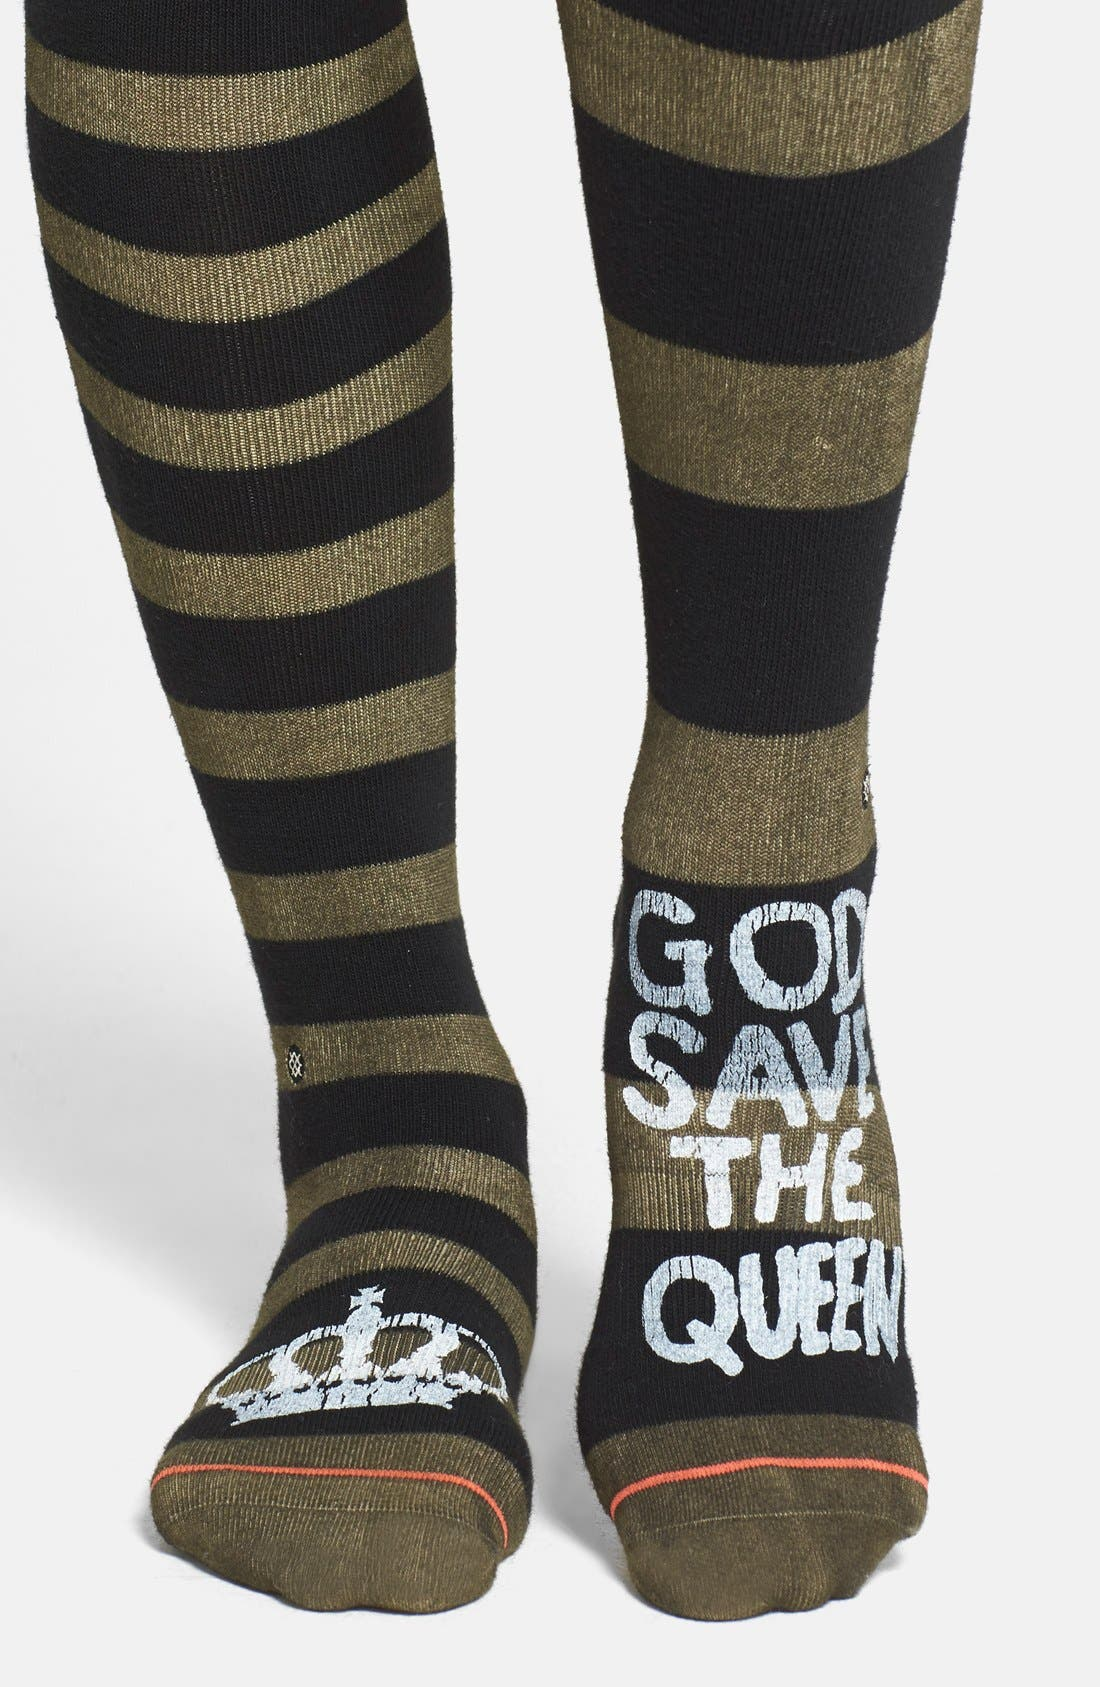 Main Image - Stance 'Save the Queen' Boot Socks